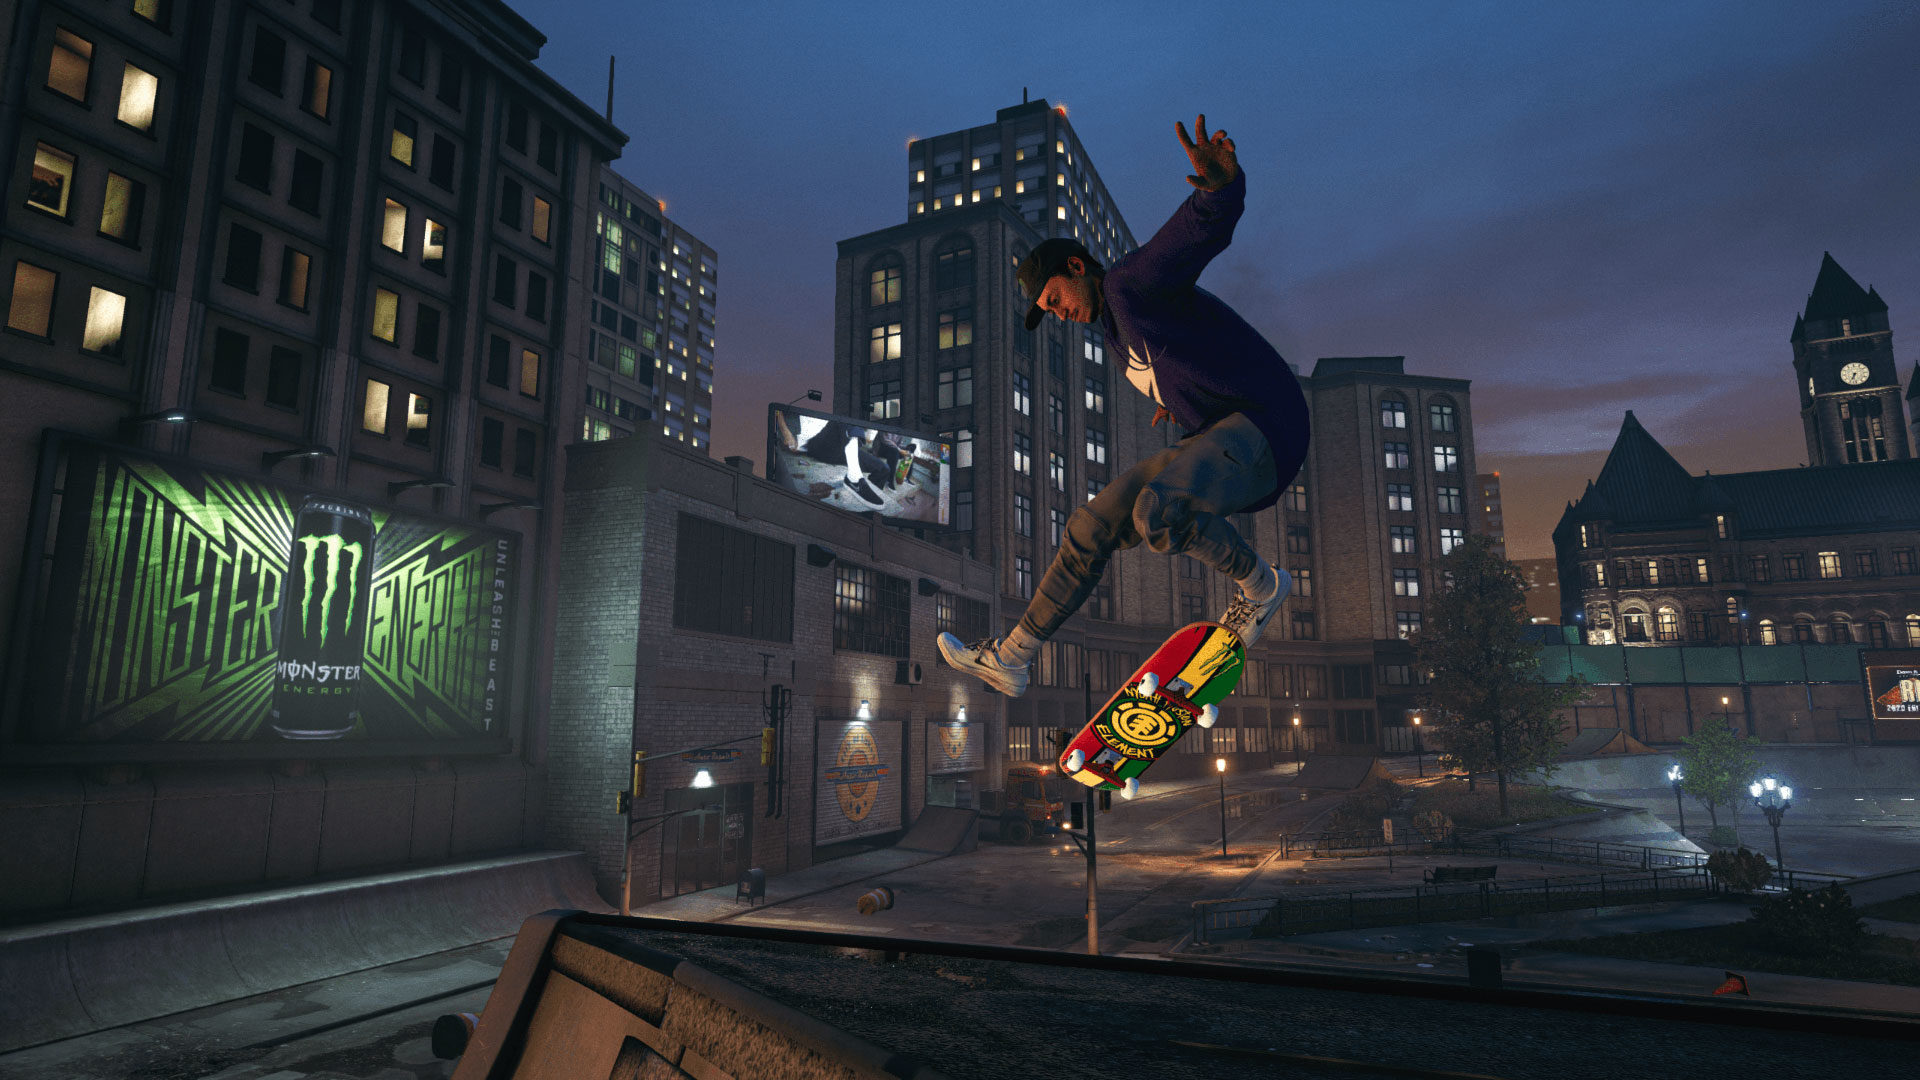 'Tony Hawk's Pro Skater 1 + 2 Remastered' Soundtrack Revealed